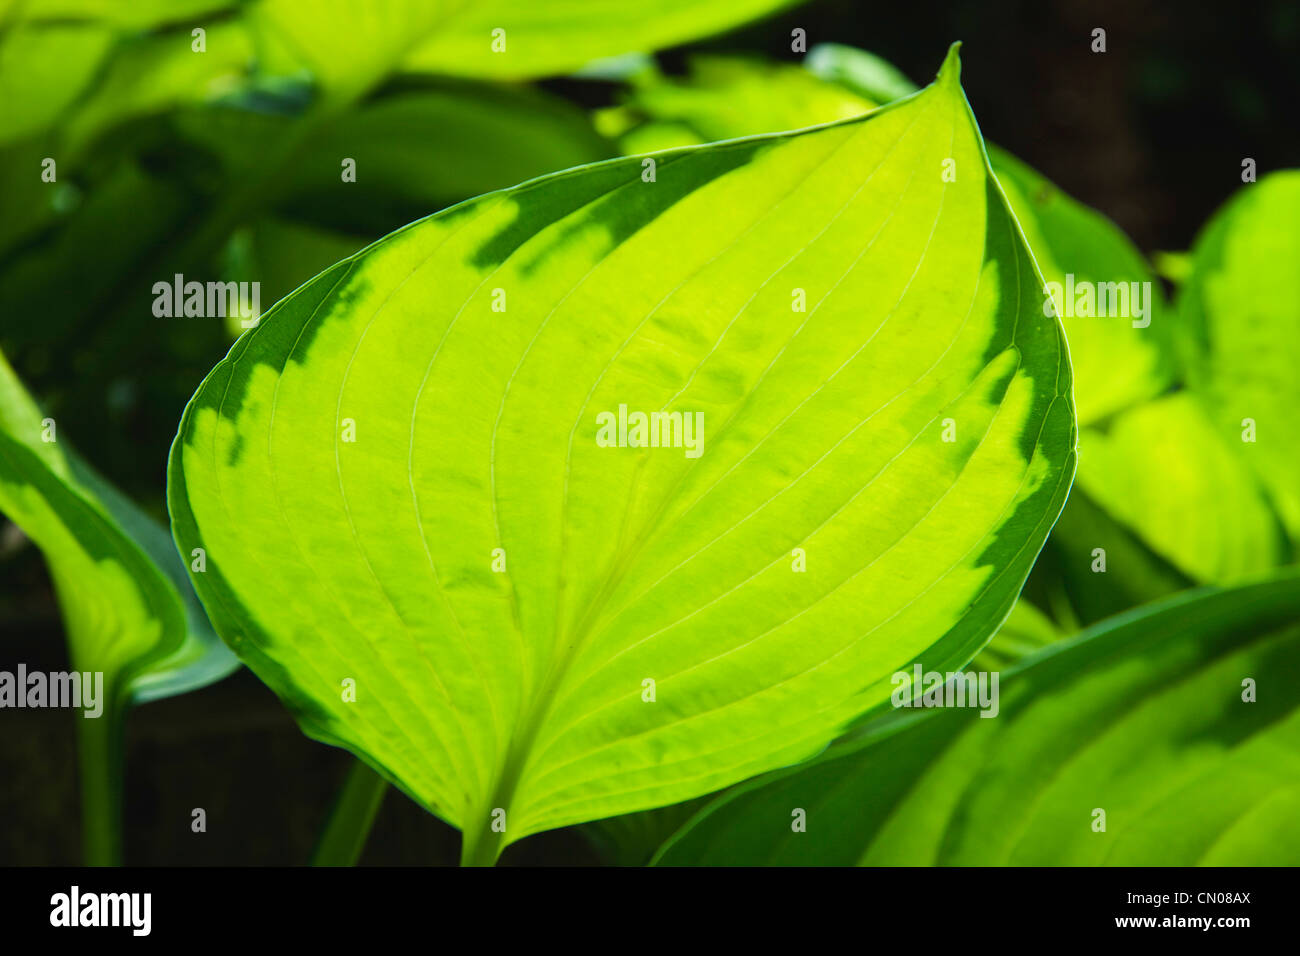 Plants Hosta Green Leaves With Sunlight Shining Through